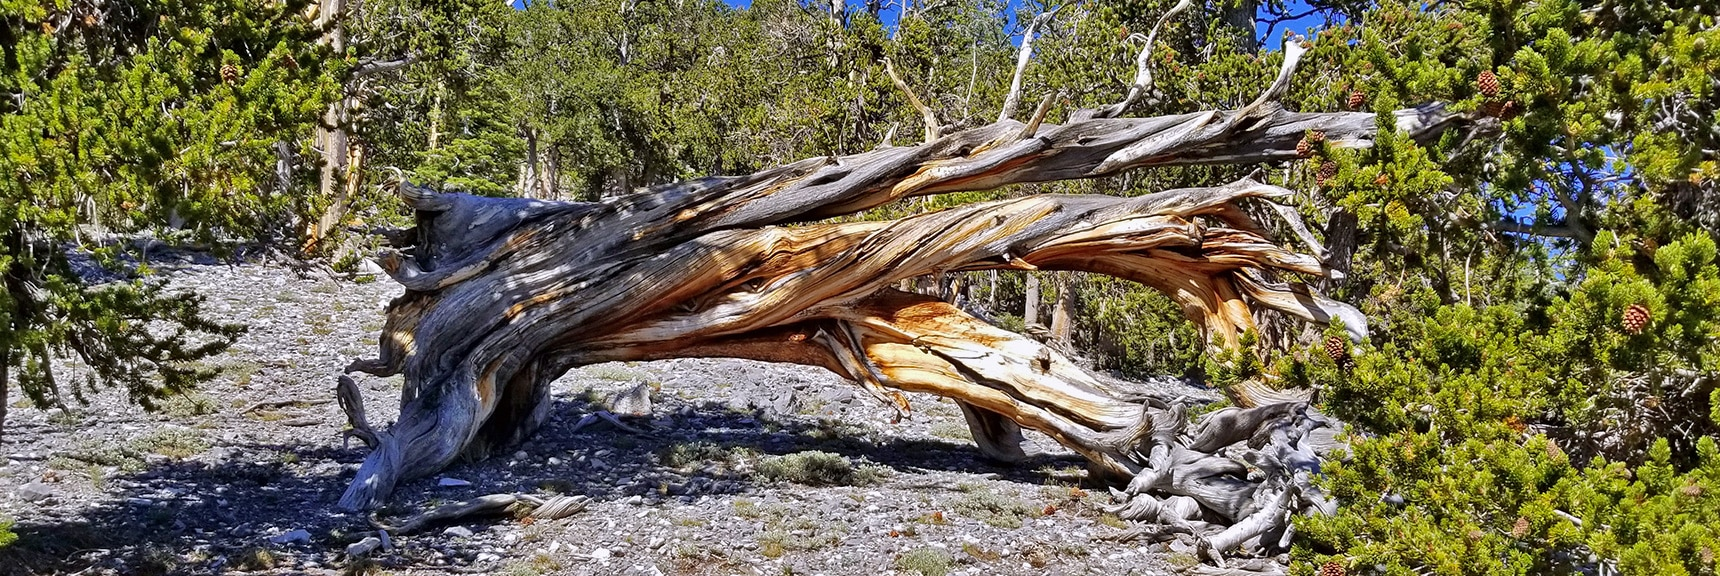 Fallen Ancient Bristlecone Pine Near Summit of Robbers Roost Canyon   Fletcher Peak from Robbers Roost   Spring Mountains, Nevada